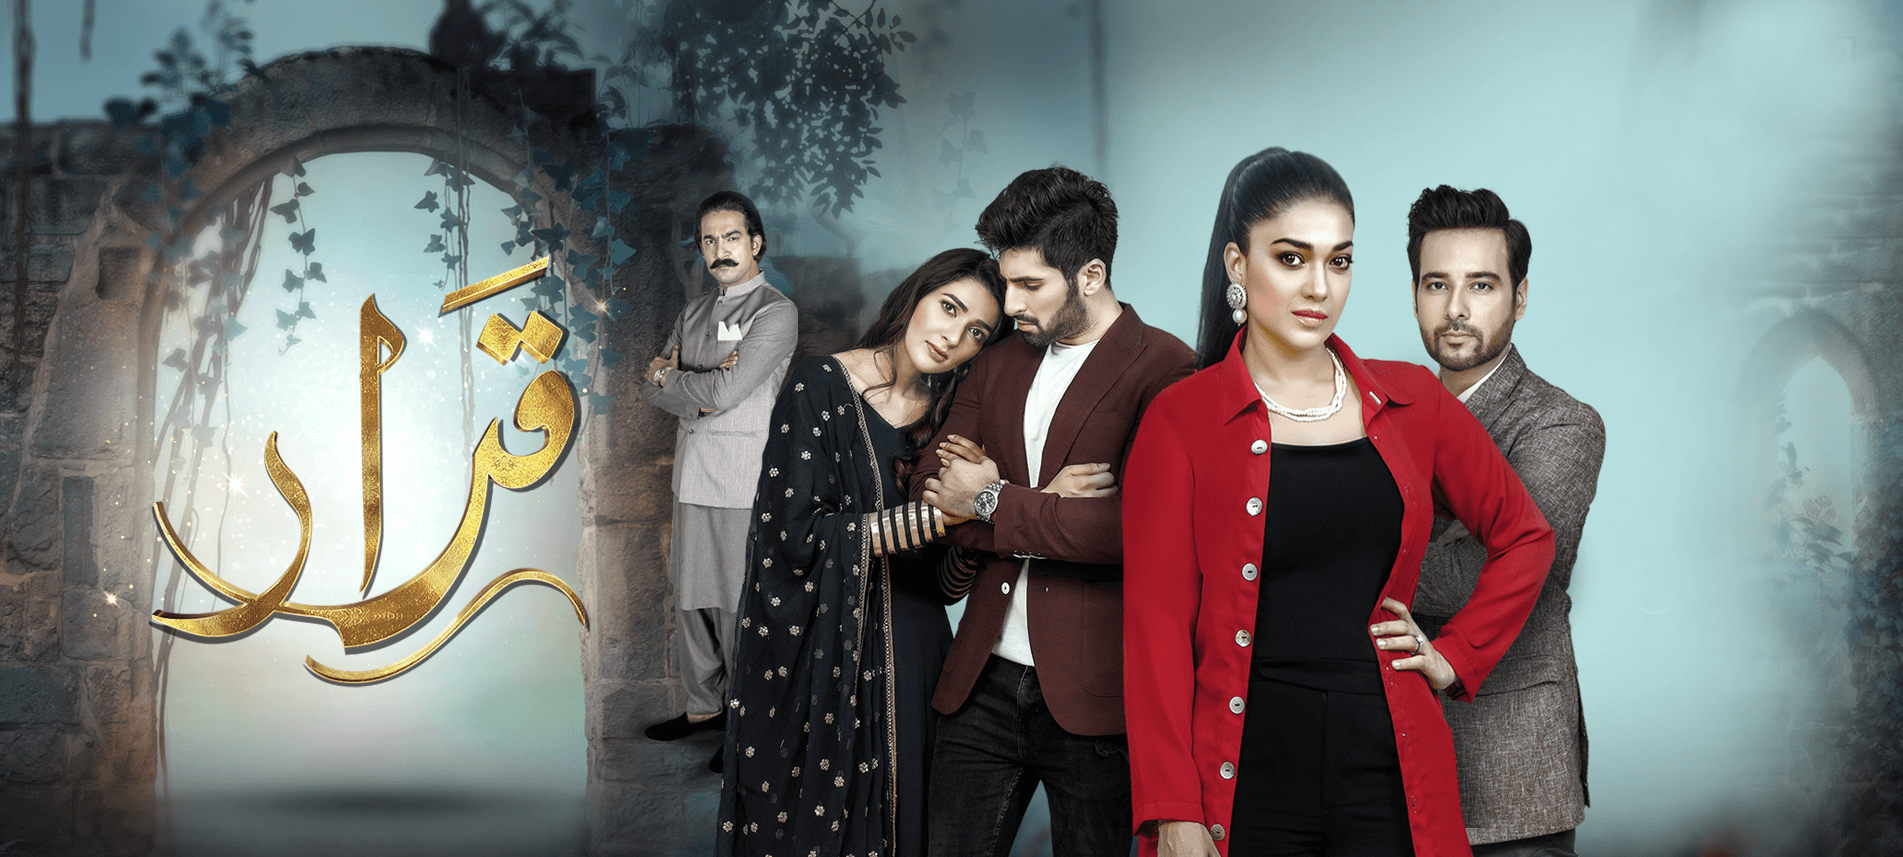 Watch Qarar Episode 18 by Hum Tv 7th March 2021 (Mikaal Zulfiqar, Sanam Jang, Muneeb Butt, Rabab Hashim,)